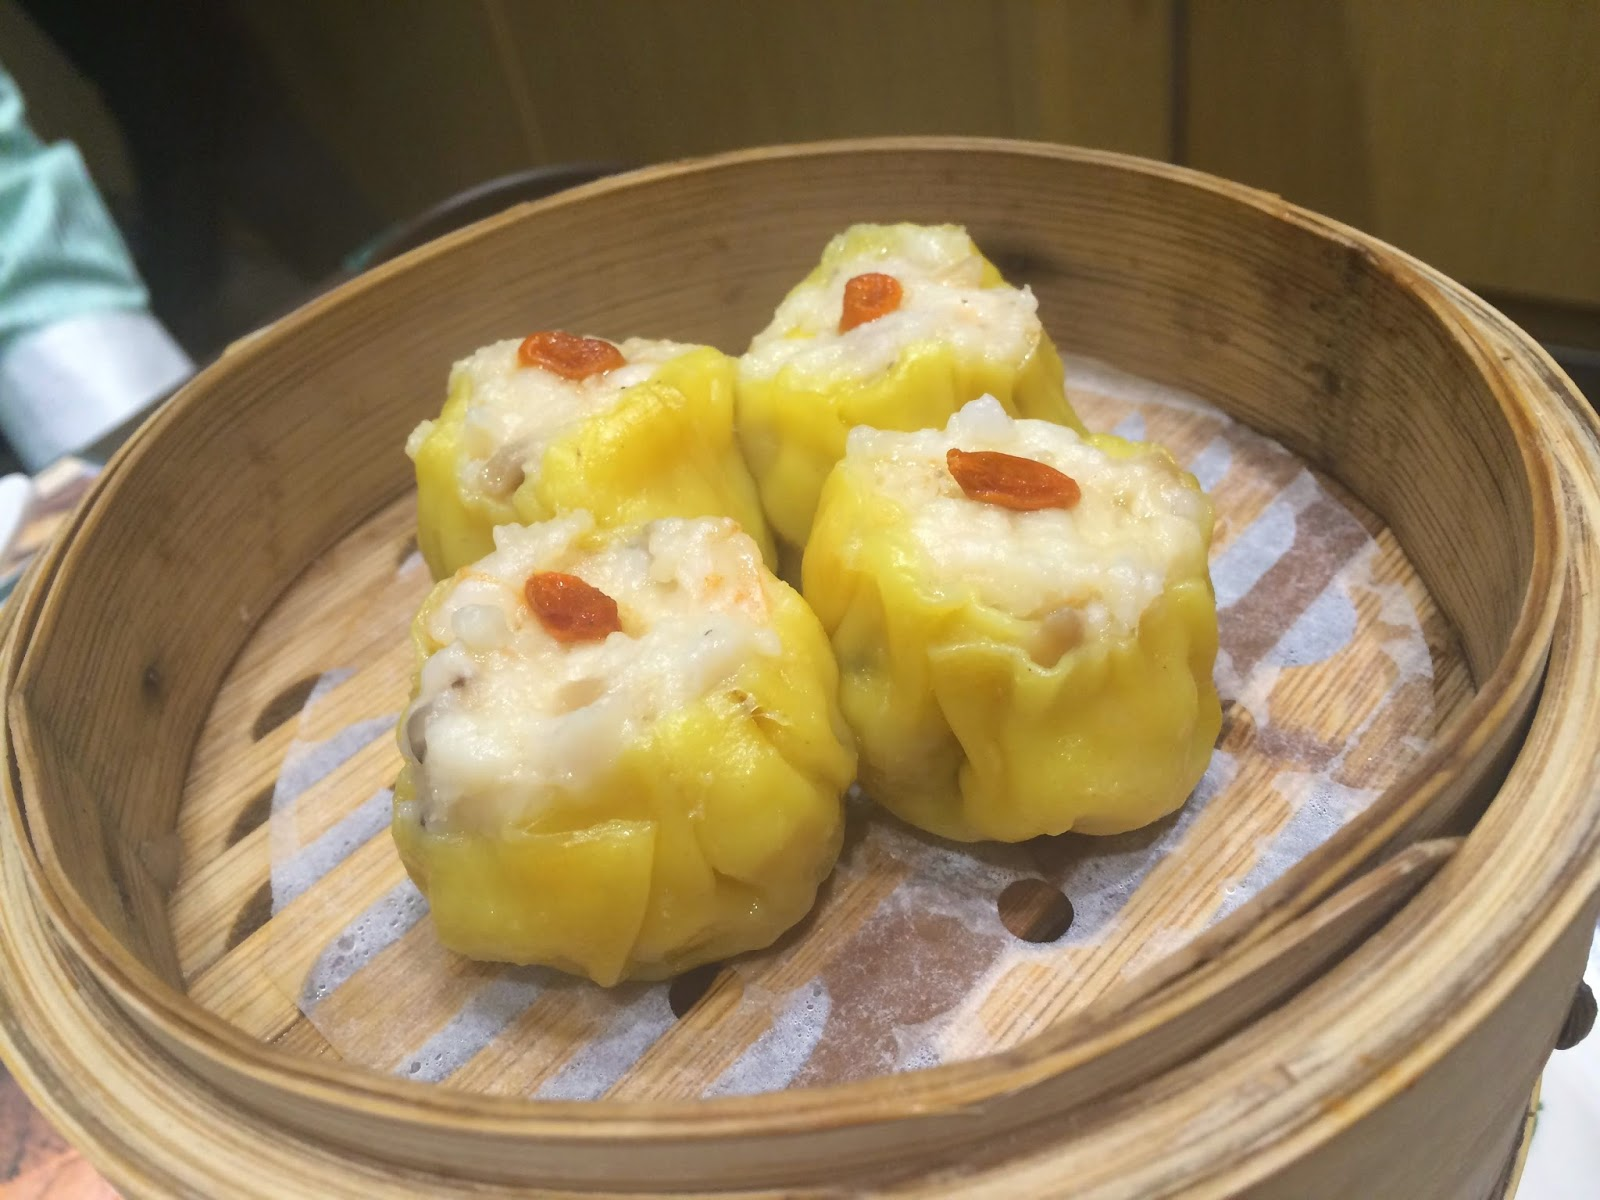 Pork and Shrimp dimsum at Tim Ho Wan